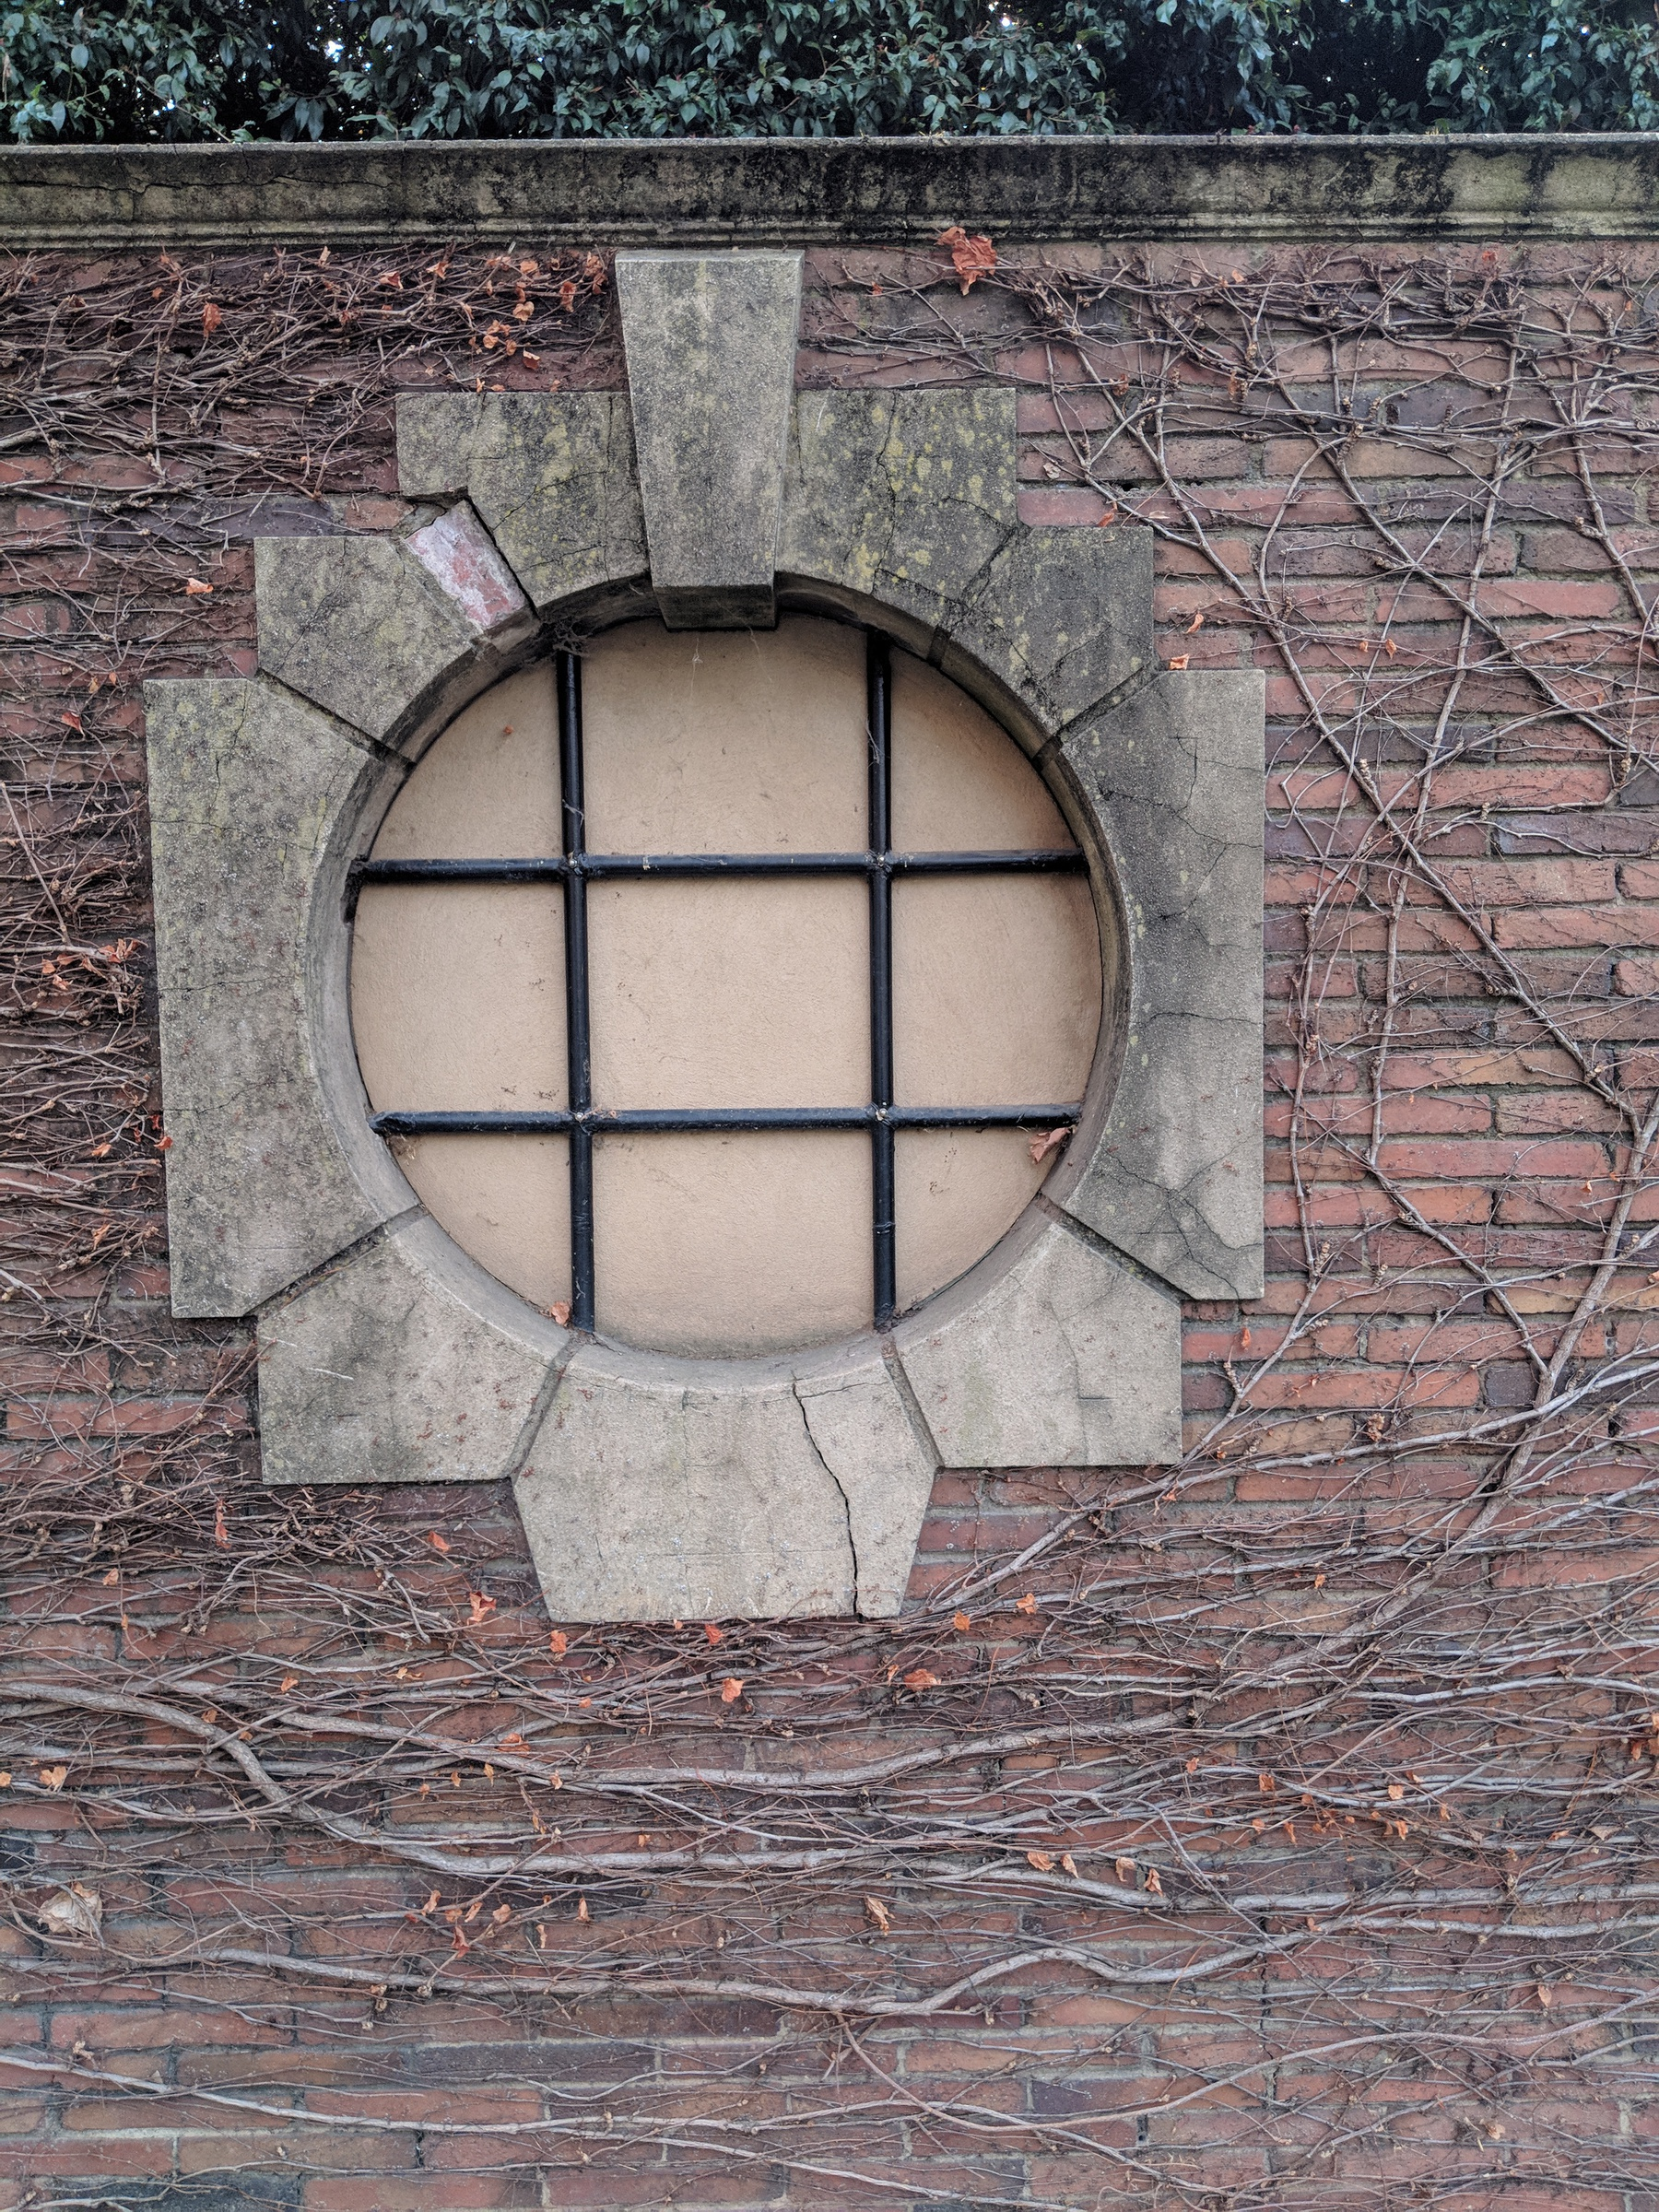 A window in a red brick wall. There is a crack here, but it's small and subtle. Branches of ivy grow on the wall around, and they are currently leafless and bare. One branch of ivy has grown up around the bottom and up the side of the window to half-encircle it.